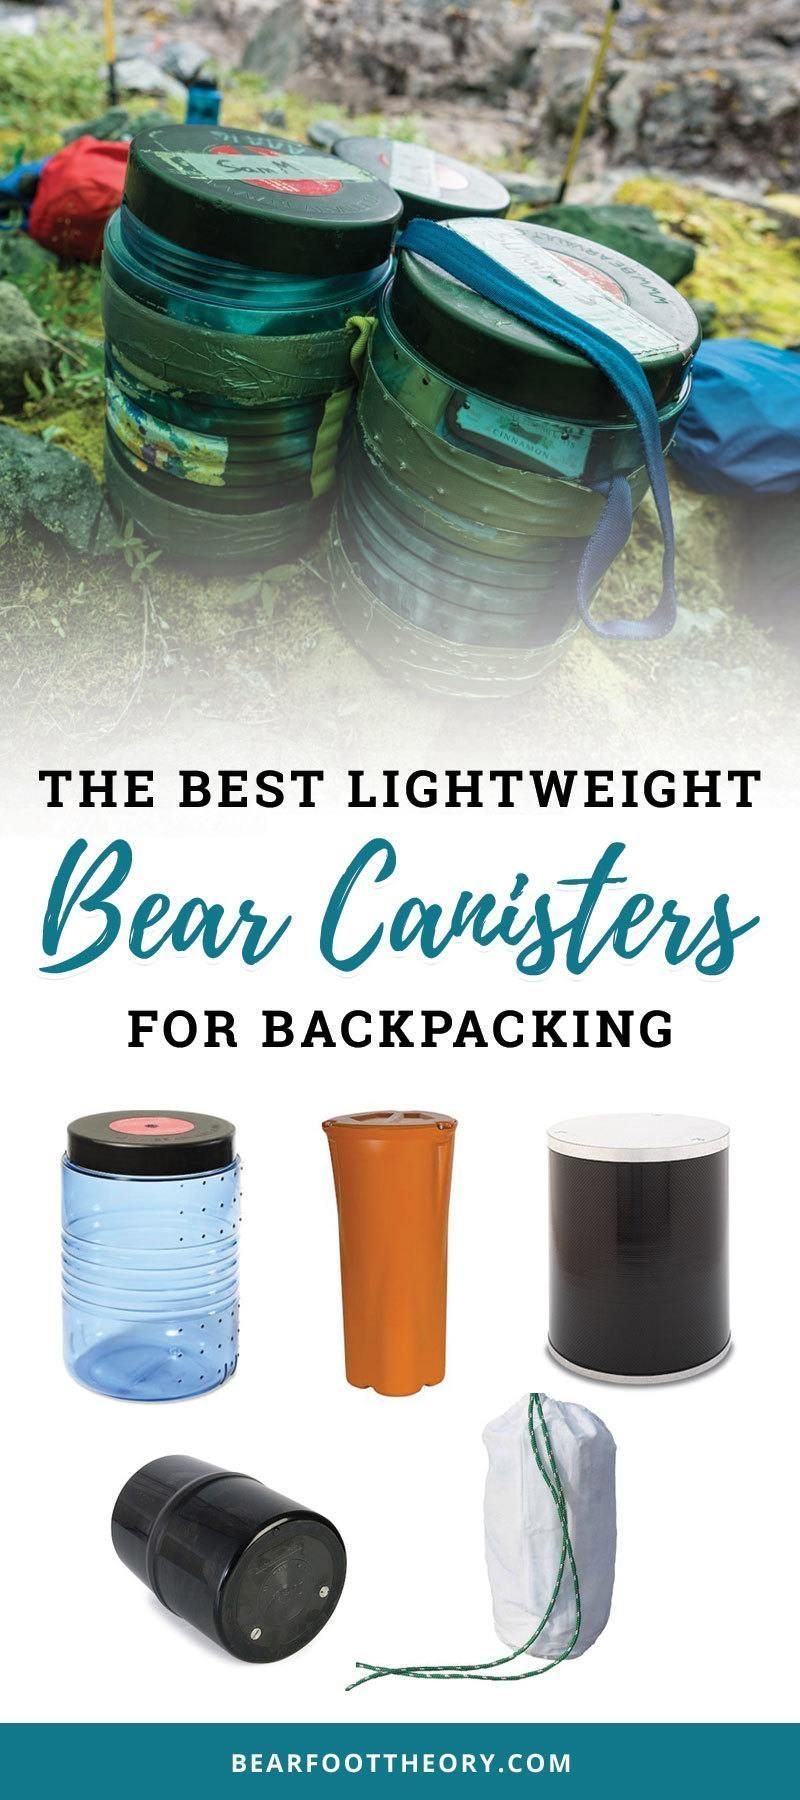 Best Bear Canisters for Backpacking - What is a Bear Canister and Why You Should Use One While Campi...